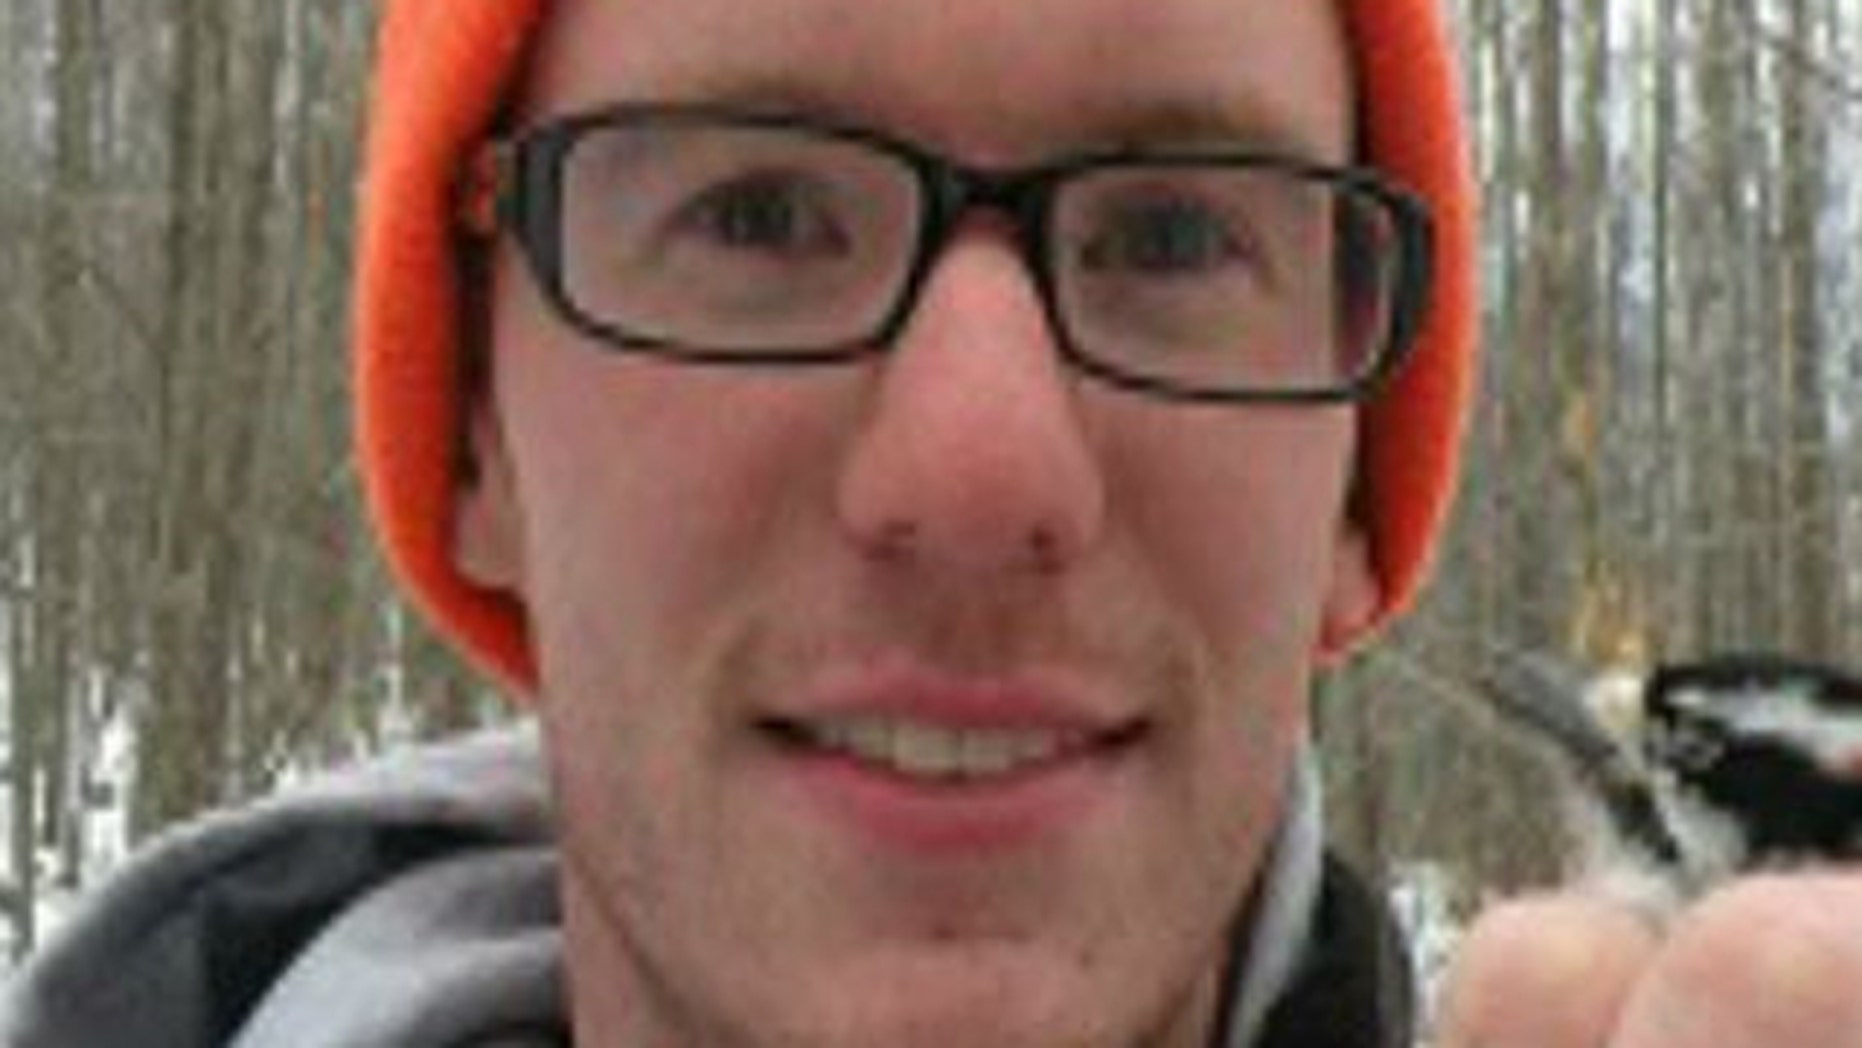 Eric Duffey, who's originally from Fitchburg and attends the University of Wisconsin-Stevens Point, was last seen about 1:15 a.m.